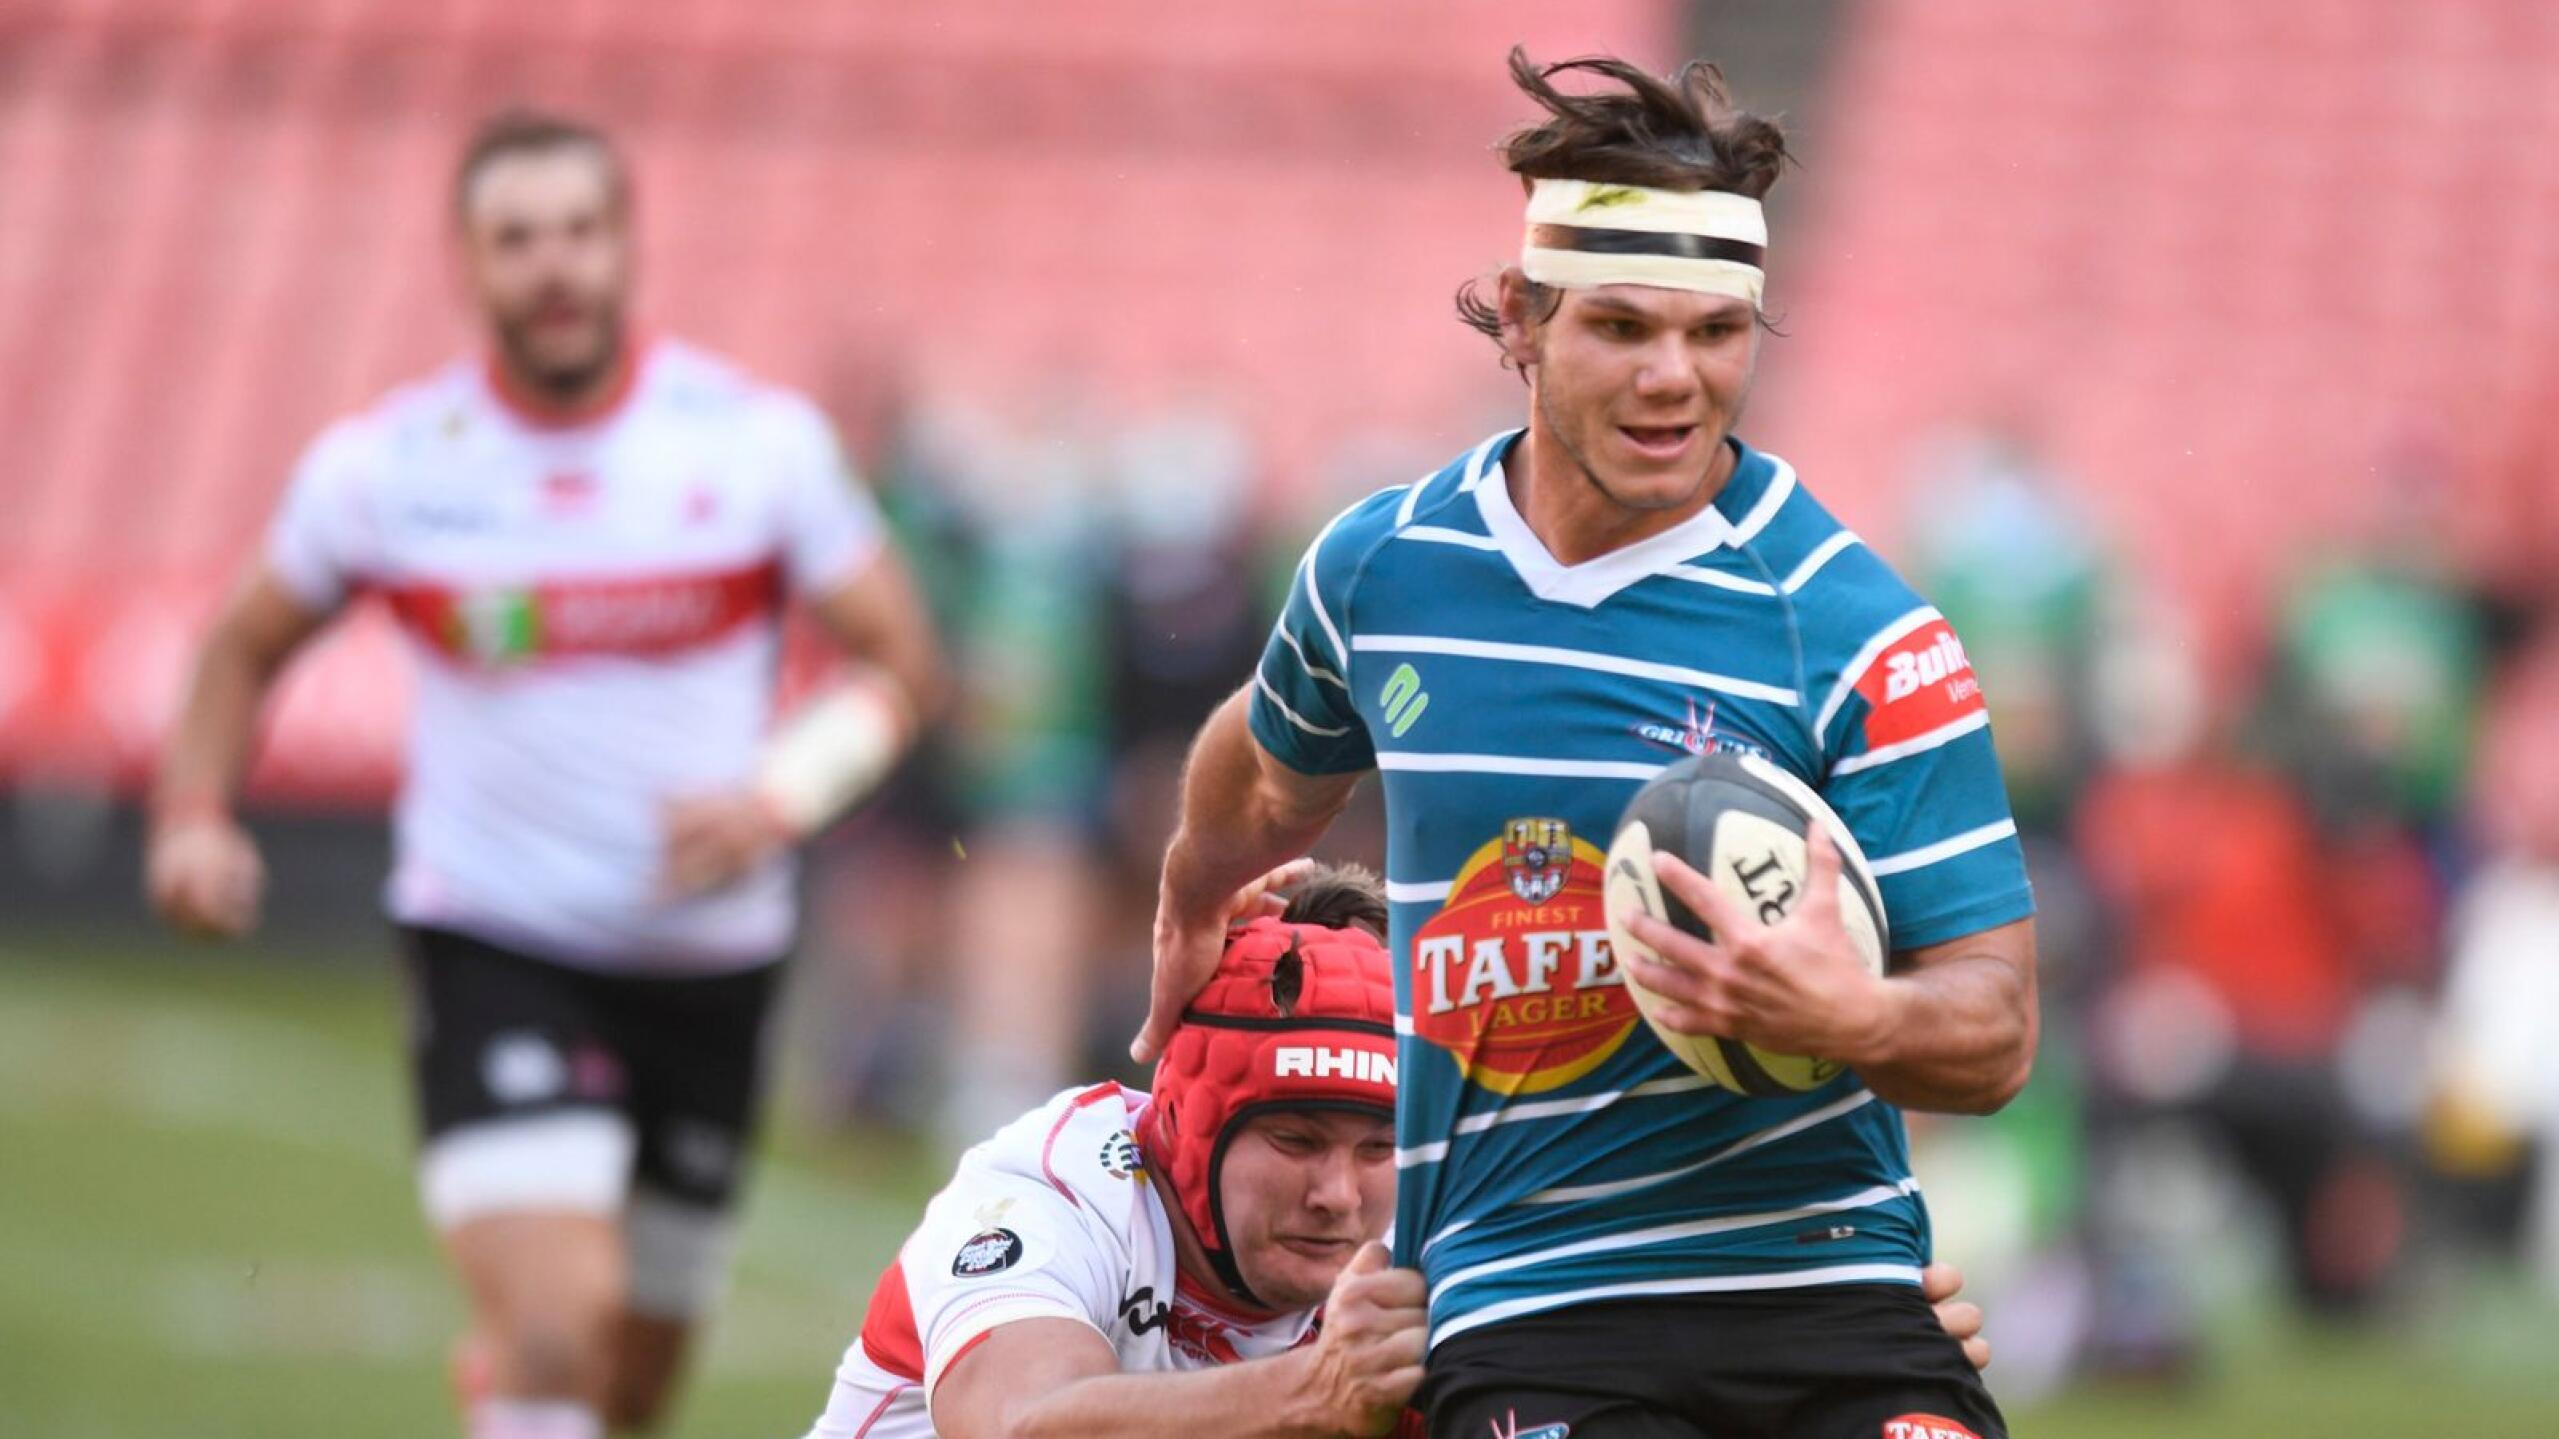 Griquas winger Eduan Keyter is tackled by Reinhardt Nothnagel of Lions during a Currie Cup match. Keyter has signed for the Sharks ahead of the United Rugby Championship